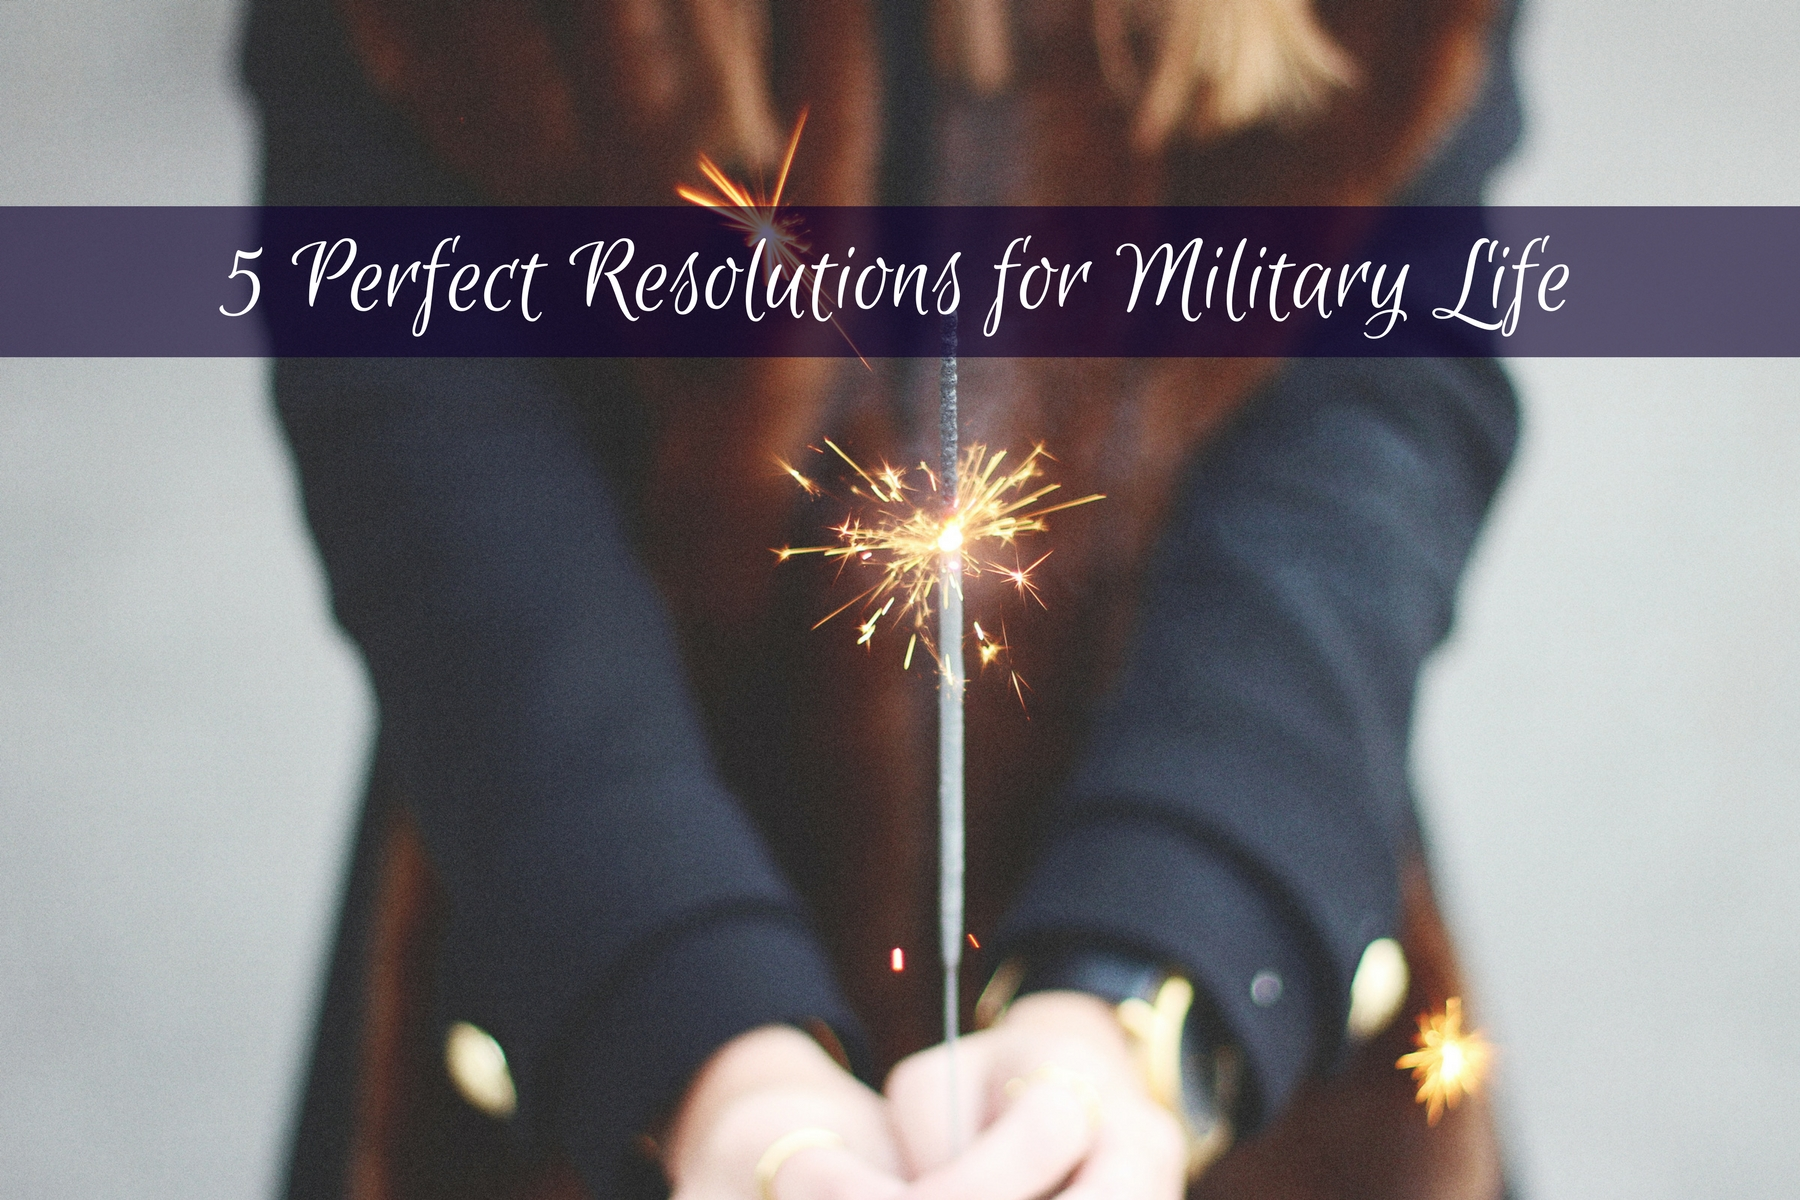 5 Perfect New Year's Resolutions for Military Life